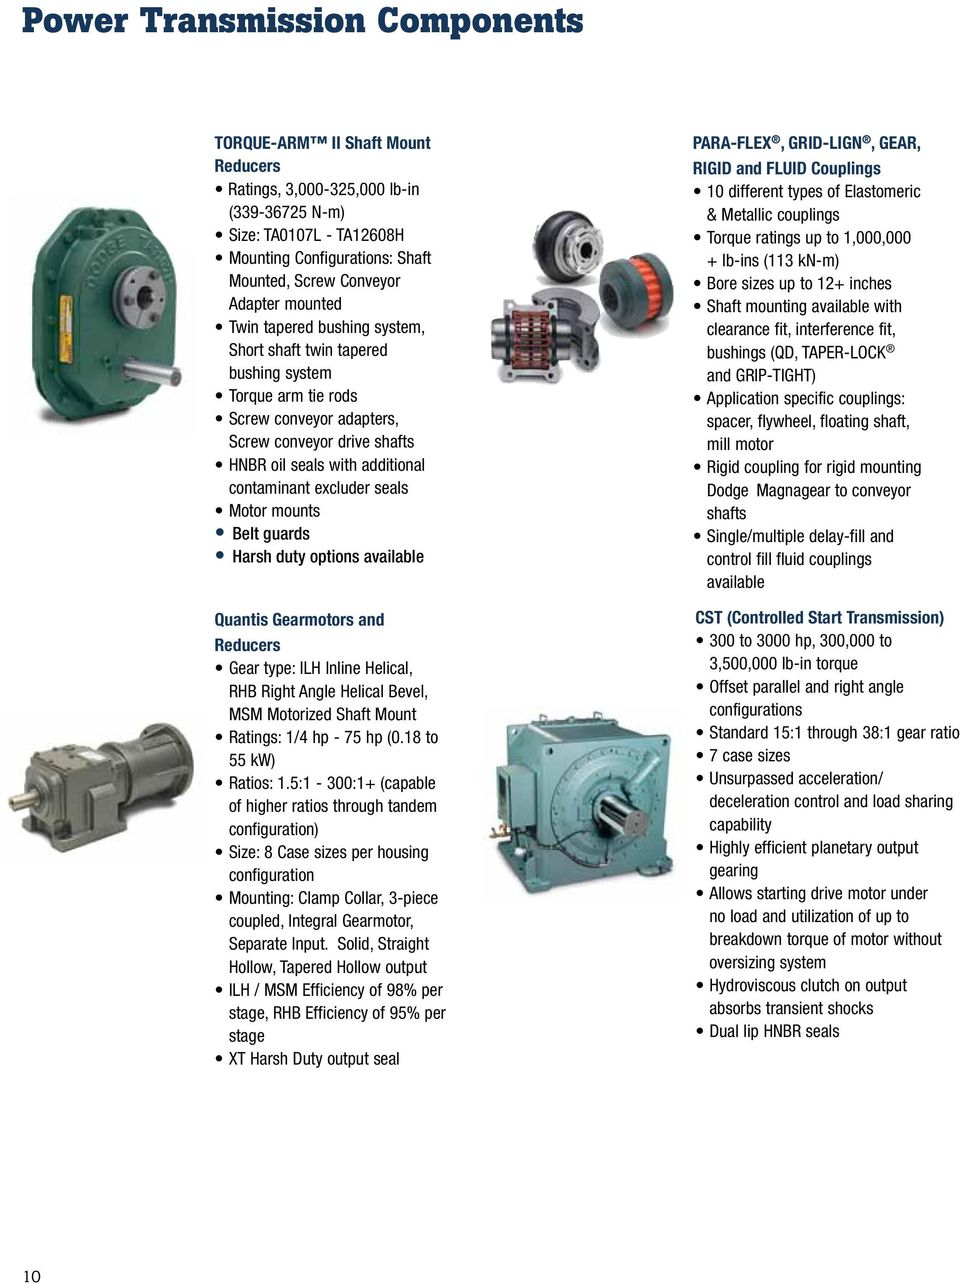 A Proven Approach To Reducing Electricity Costs Pdf Bushing Ar Kw Excluder Seals Motor Mounts Belt Guards Harsh Duty Options Available Quantis Gearmotors And Reducers Gear Type